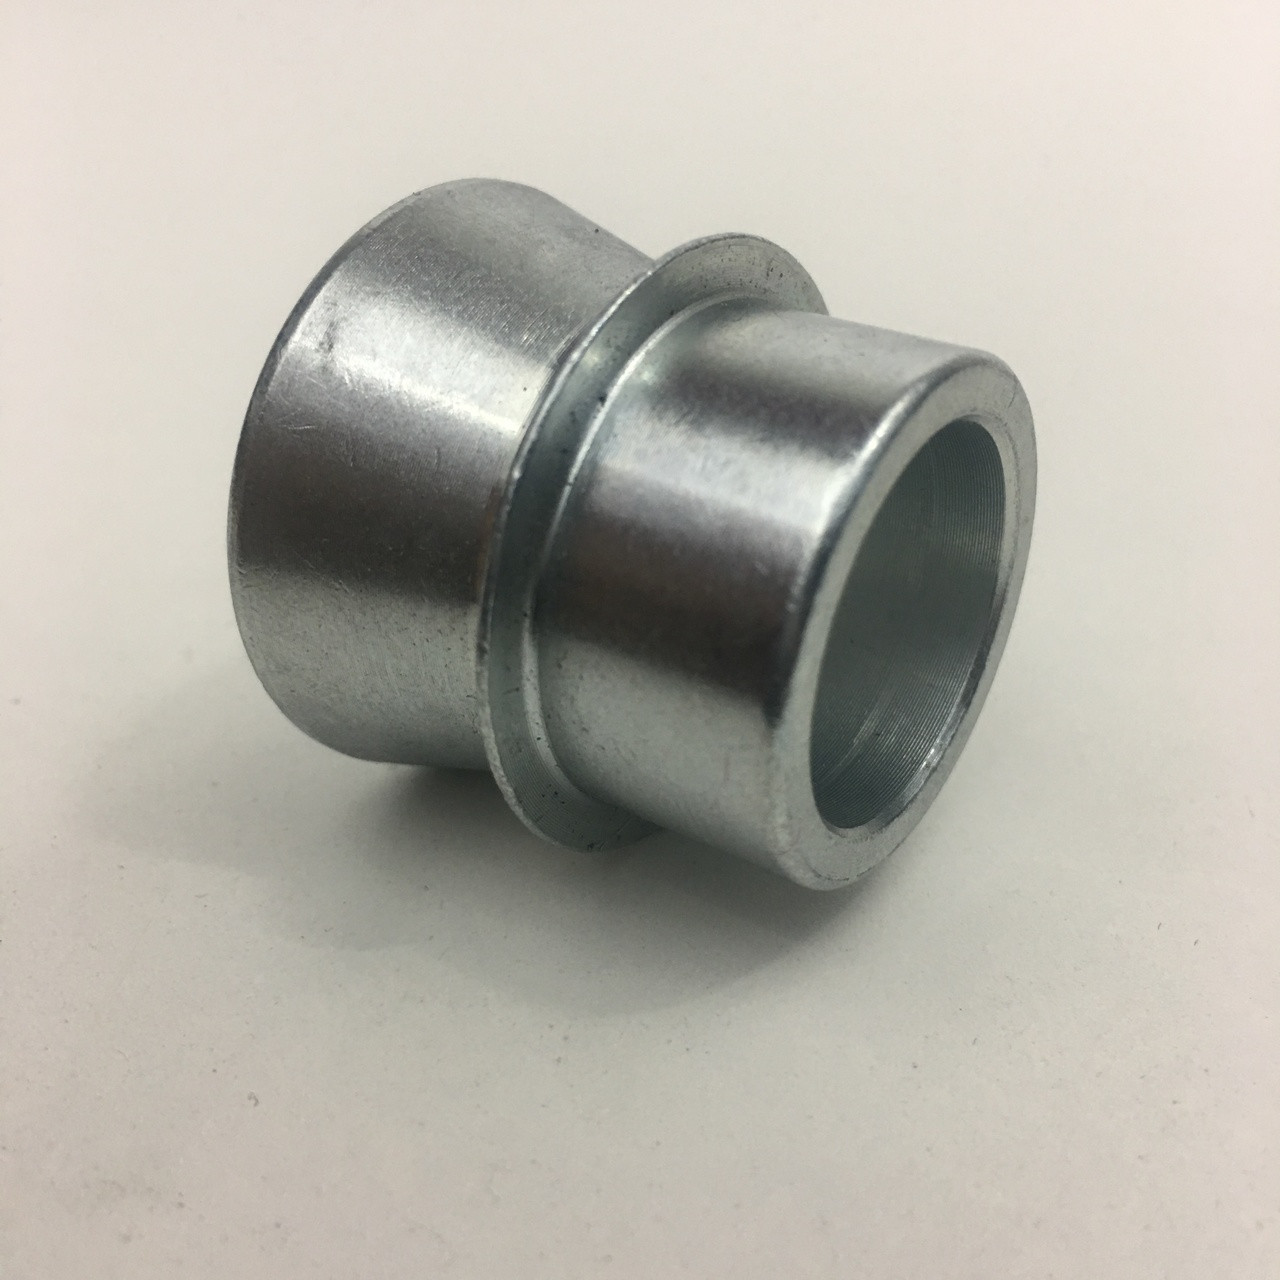 Zinc Coated Misalignment For 1 To 9 16 Bolt 2 5 8 Pocket